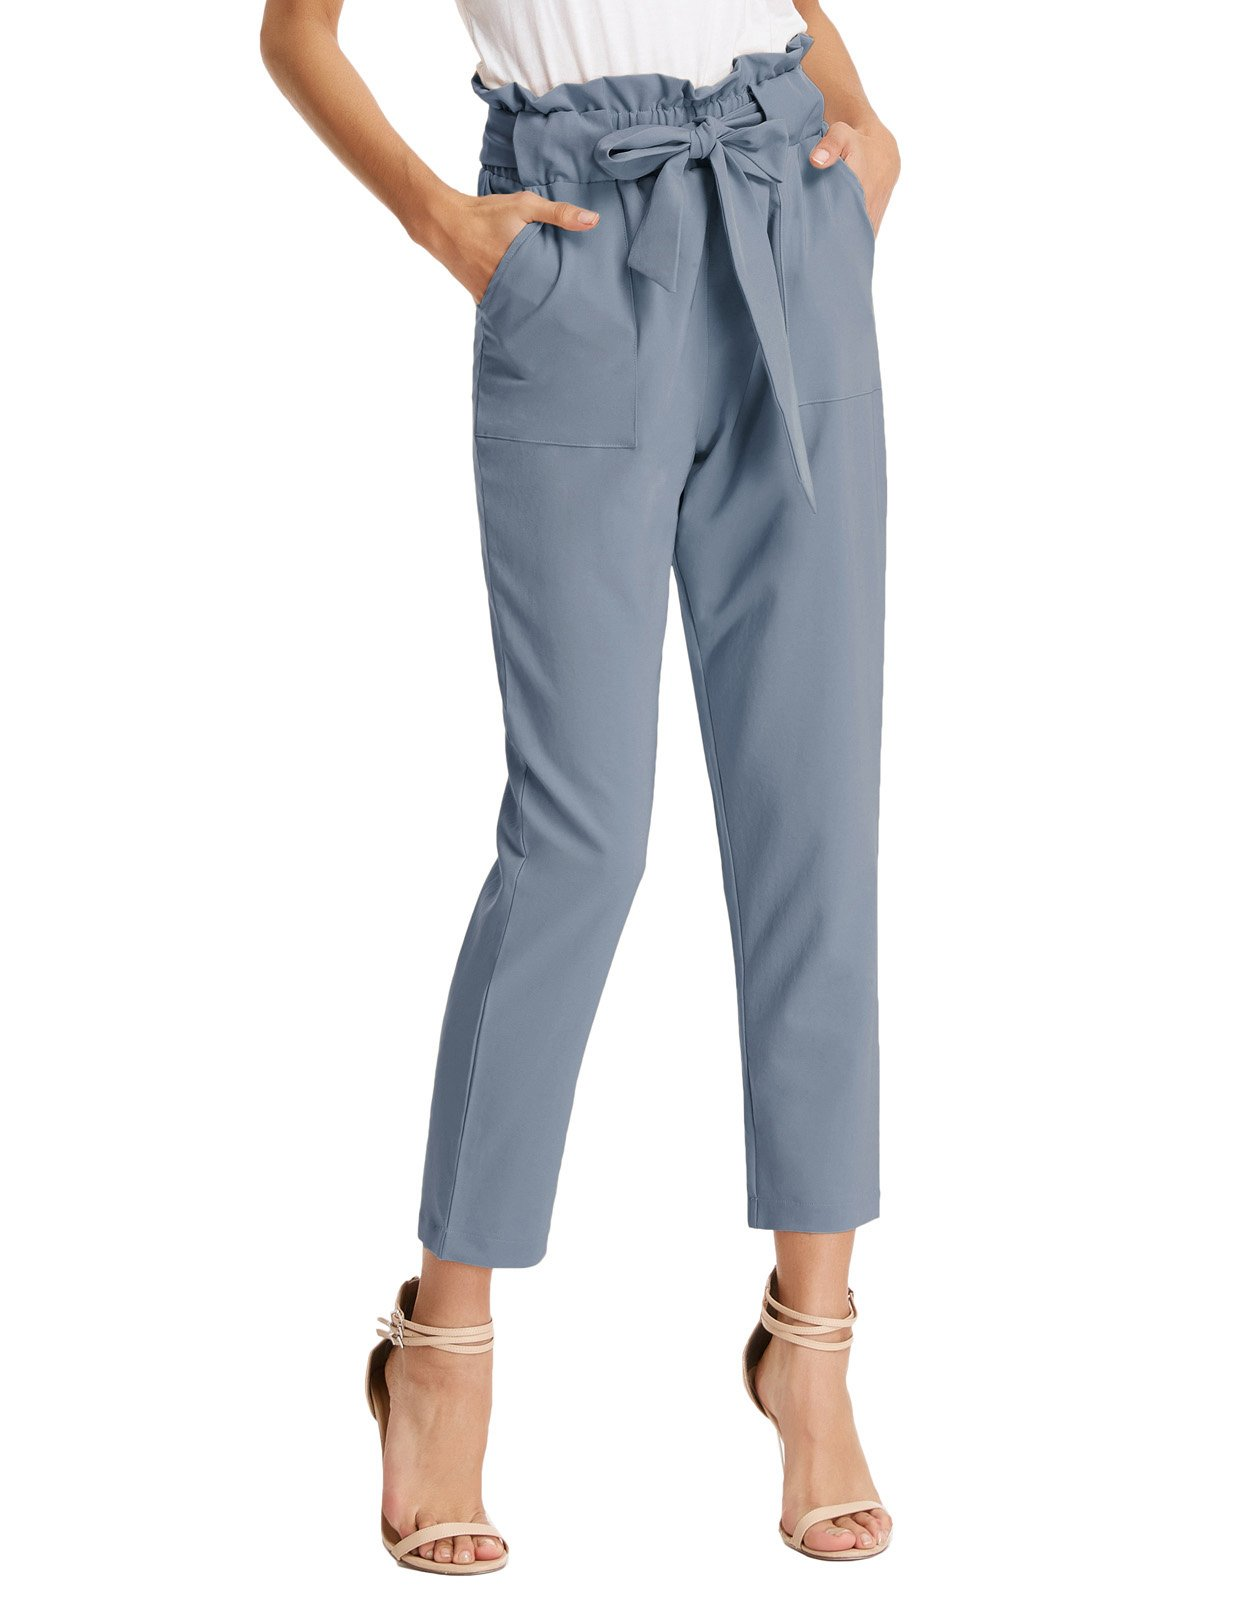 Women's Simple Solid Ruffle Tie Waist Pants with Pockets L Gray Blue